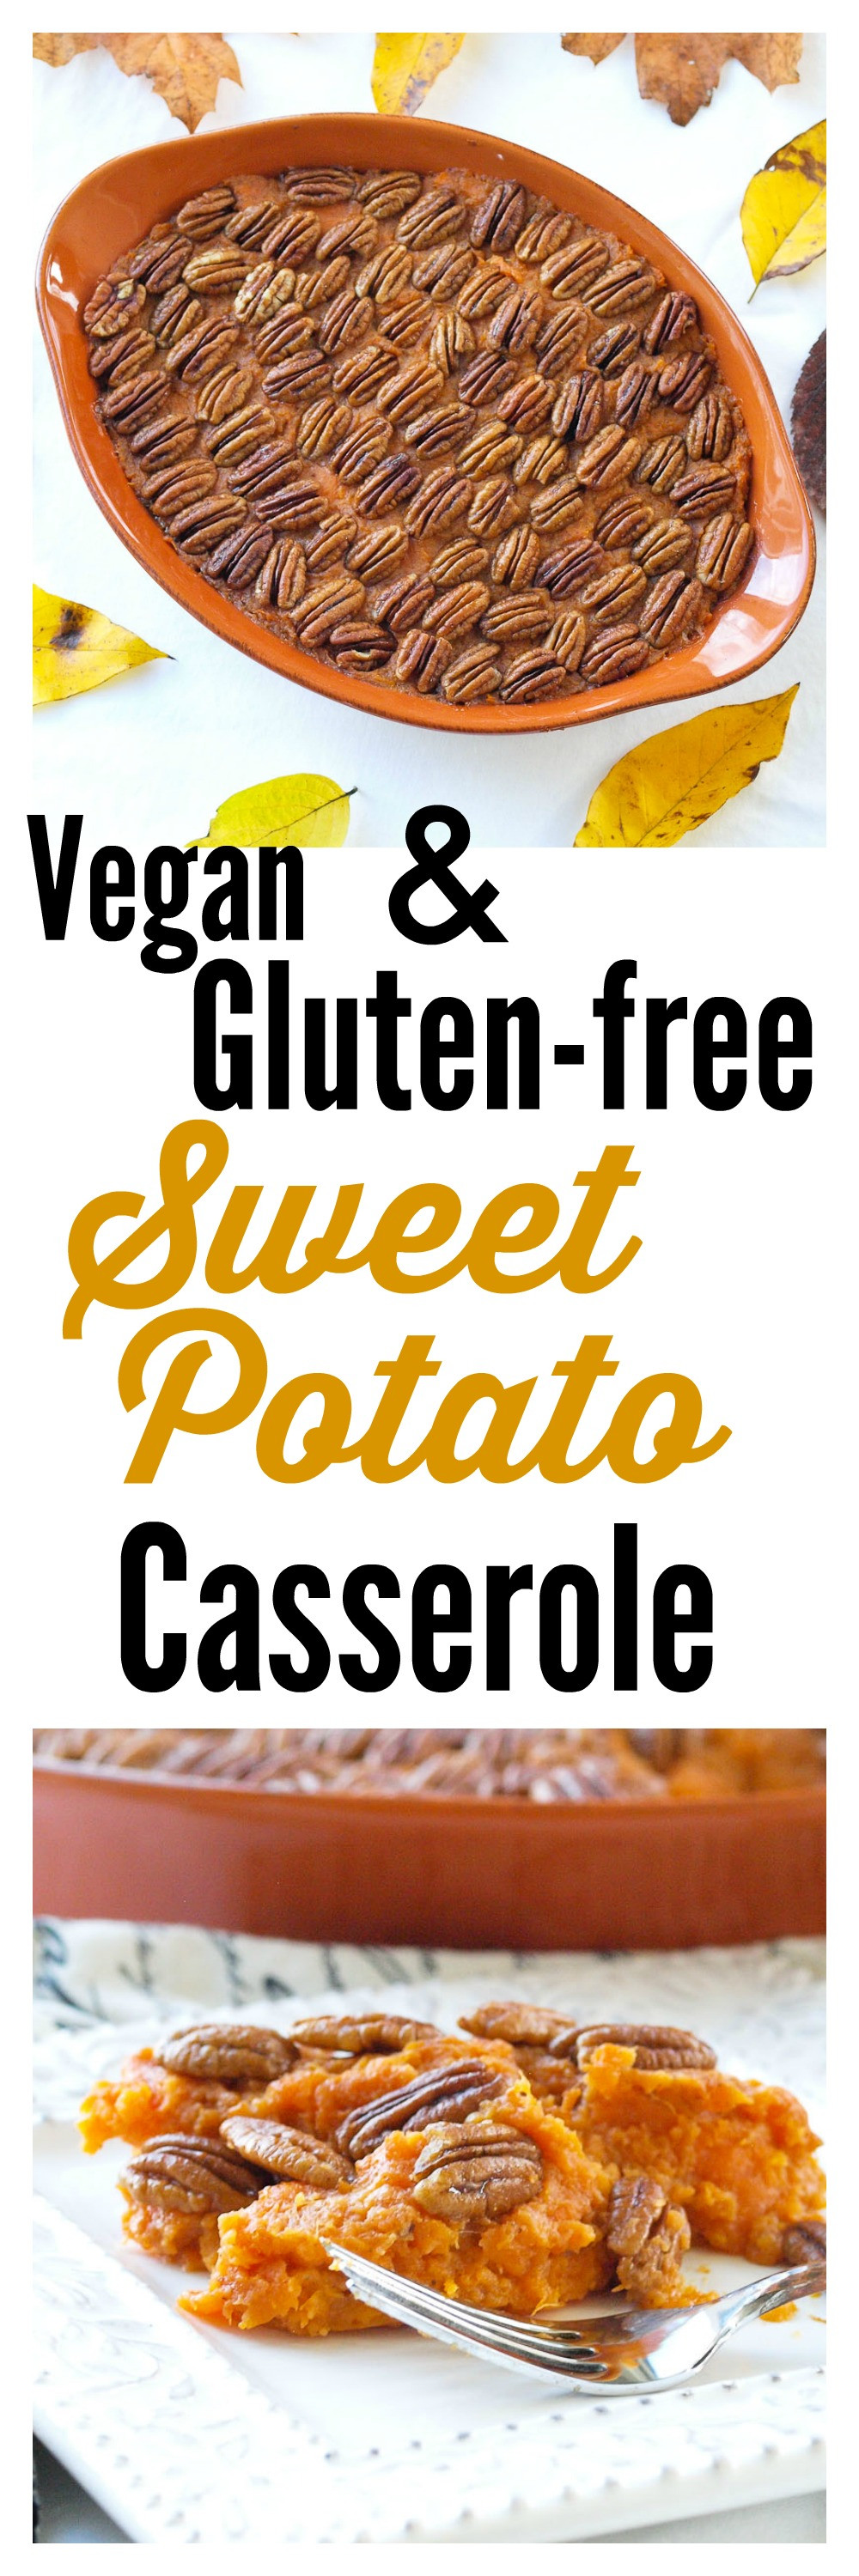 Sweet Potatoes Recipe For Thanksgiving Dinner  Sweet Potato Casserole Vegan and Gluten free Happy